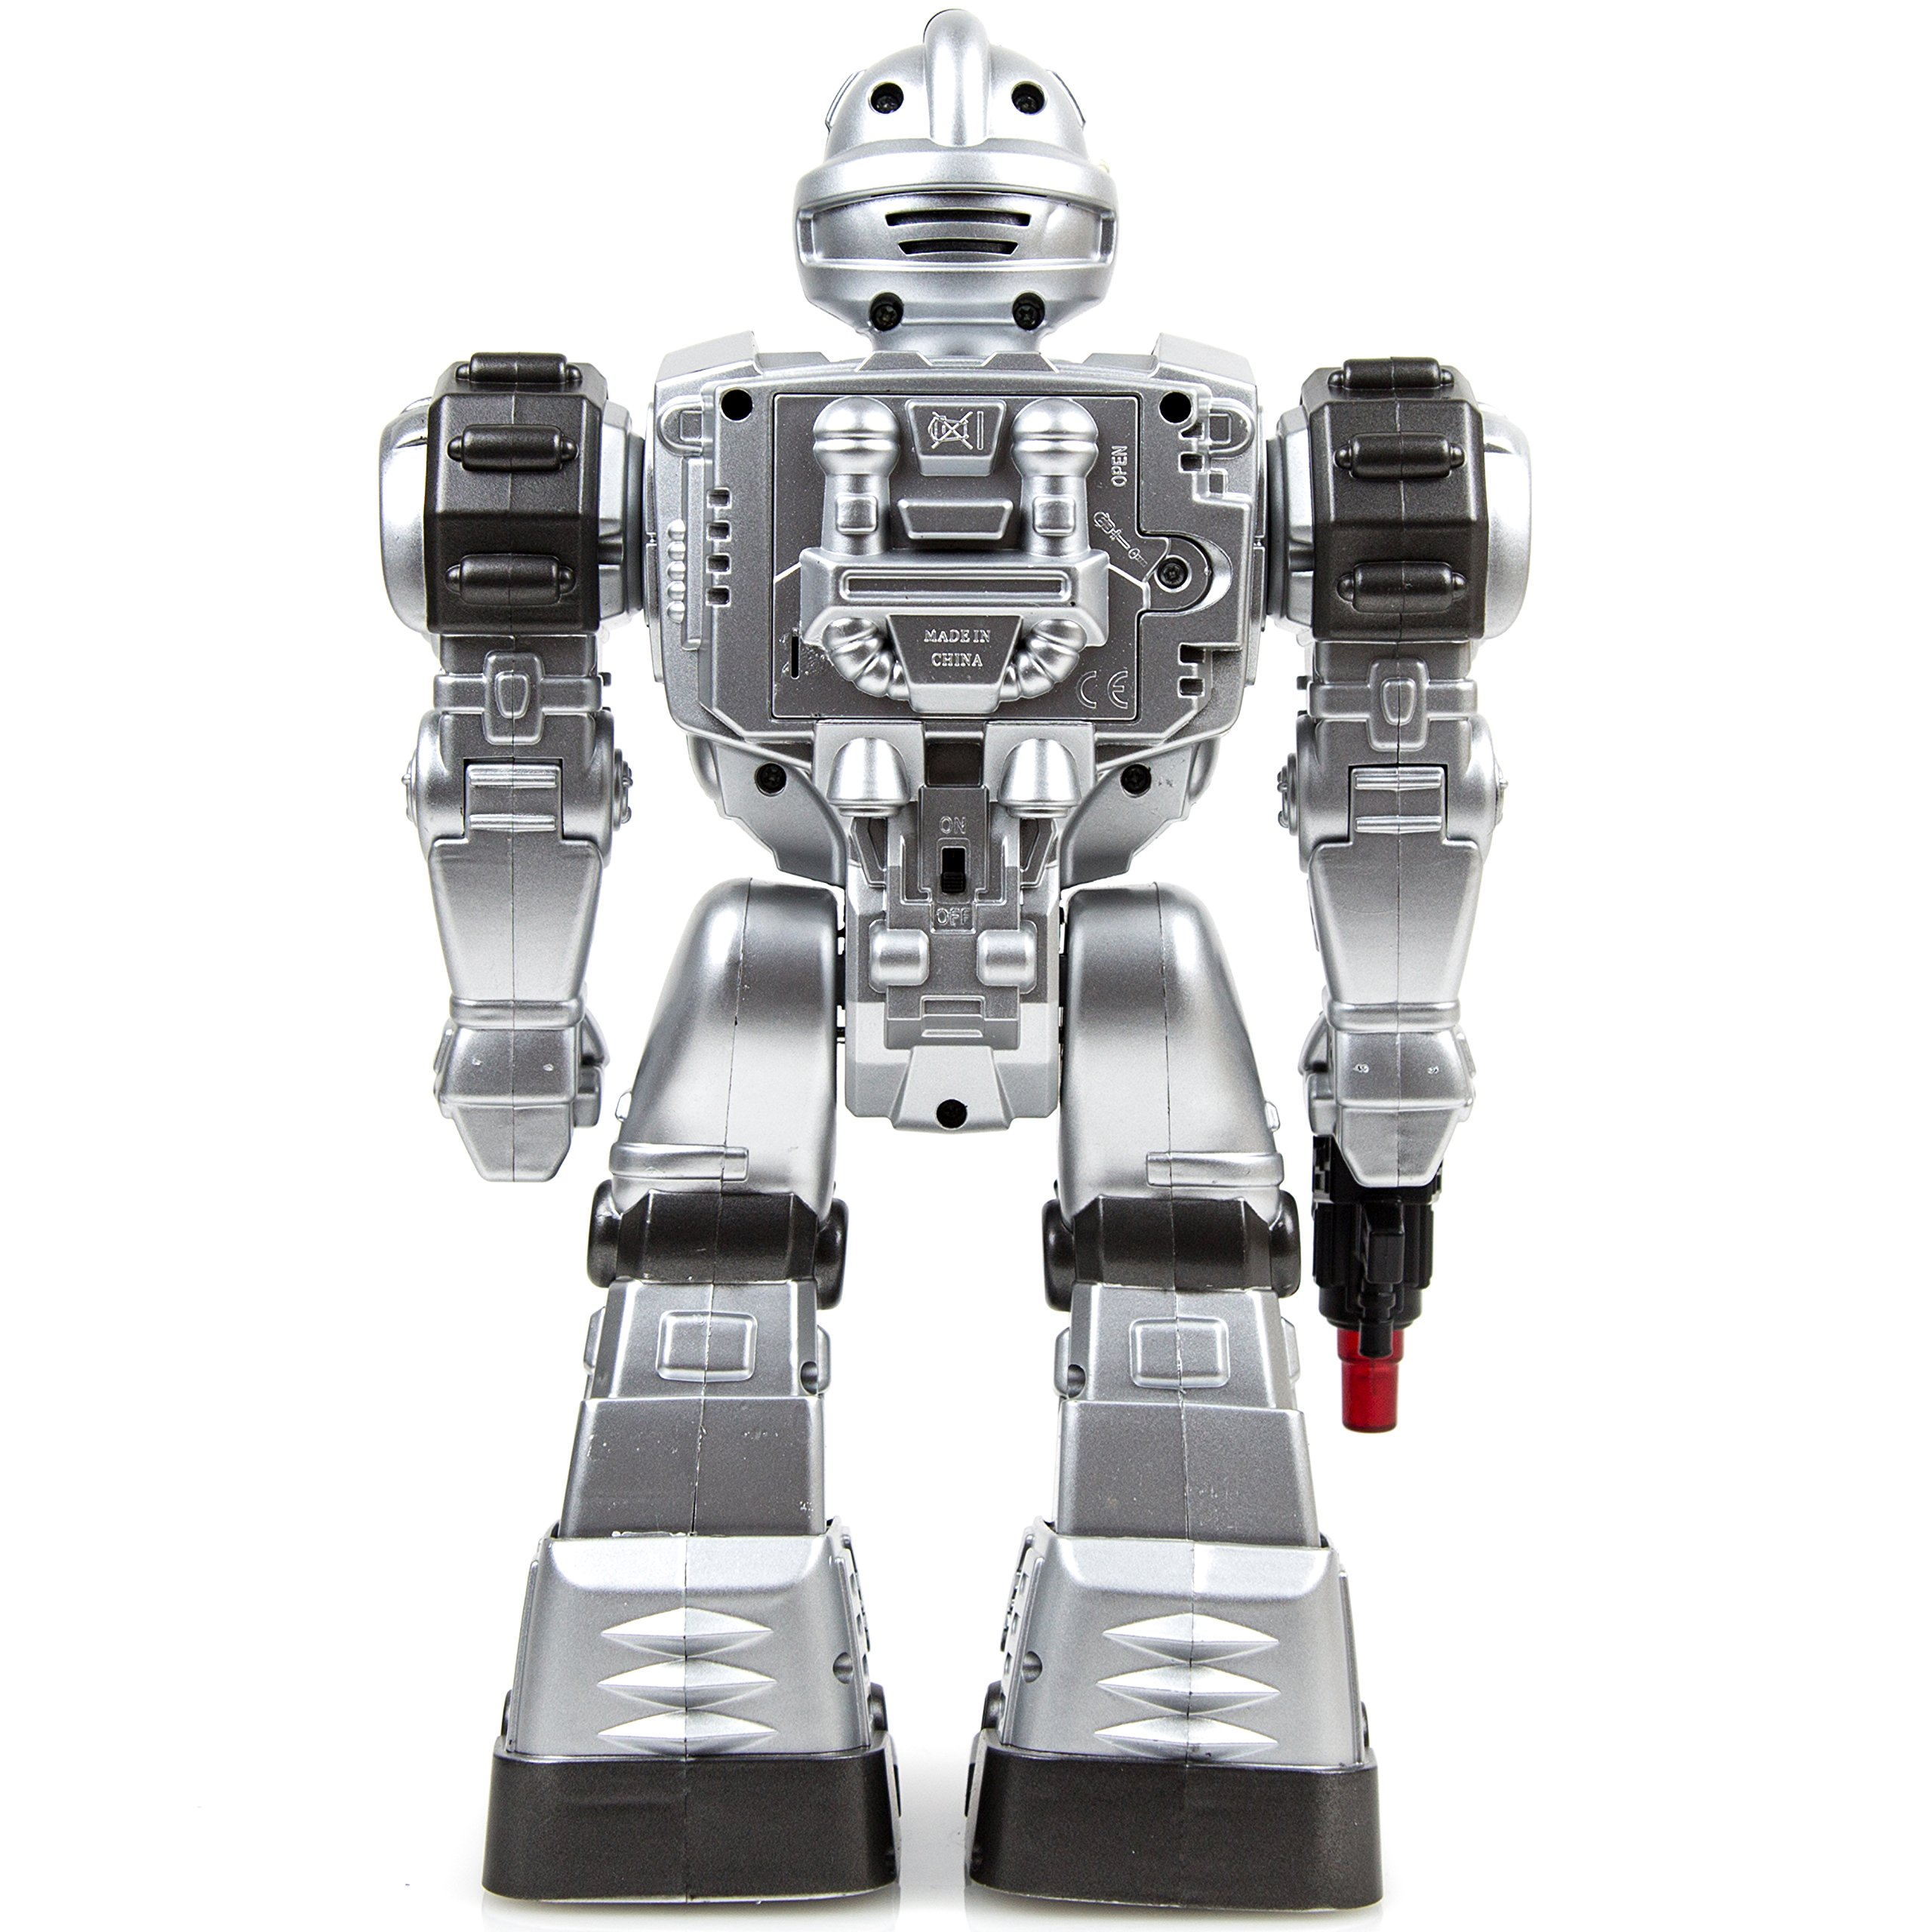 Toysery Remote Control Robot Police Toy for Kids Boys Girls with Flashing Lights Action Toy for Boys by Toysery (Image #4)